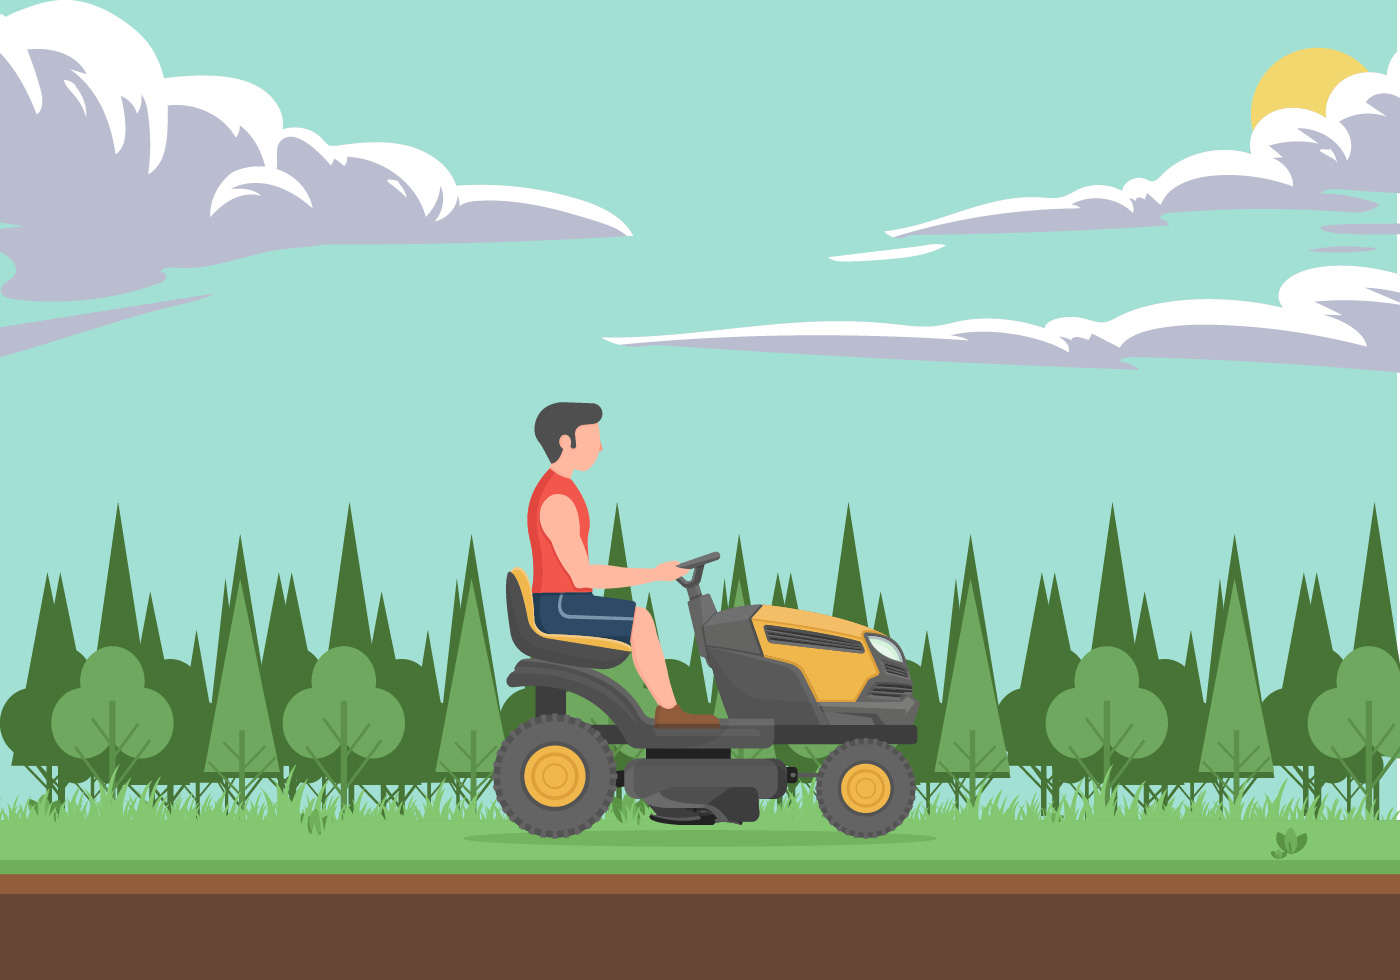 Man With Lawn Mower Illustration Vector Concept Download